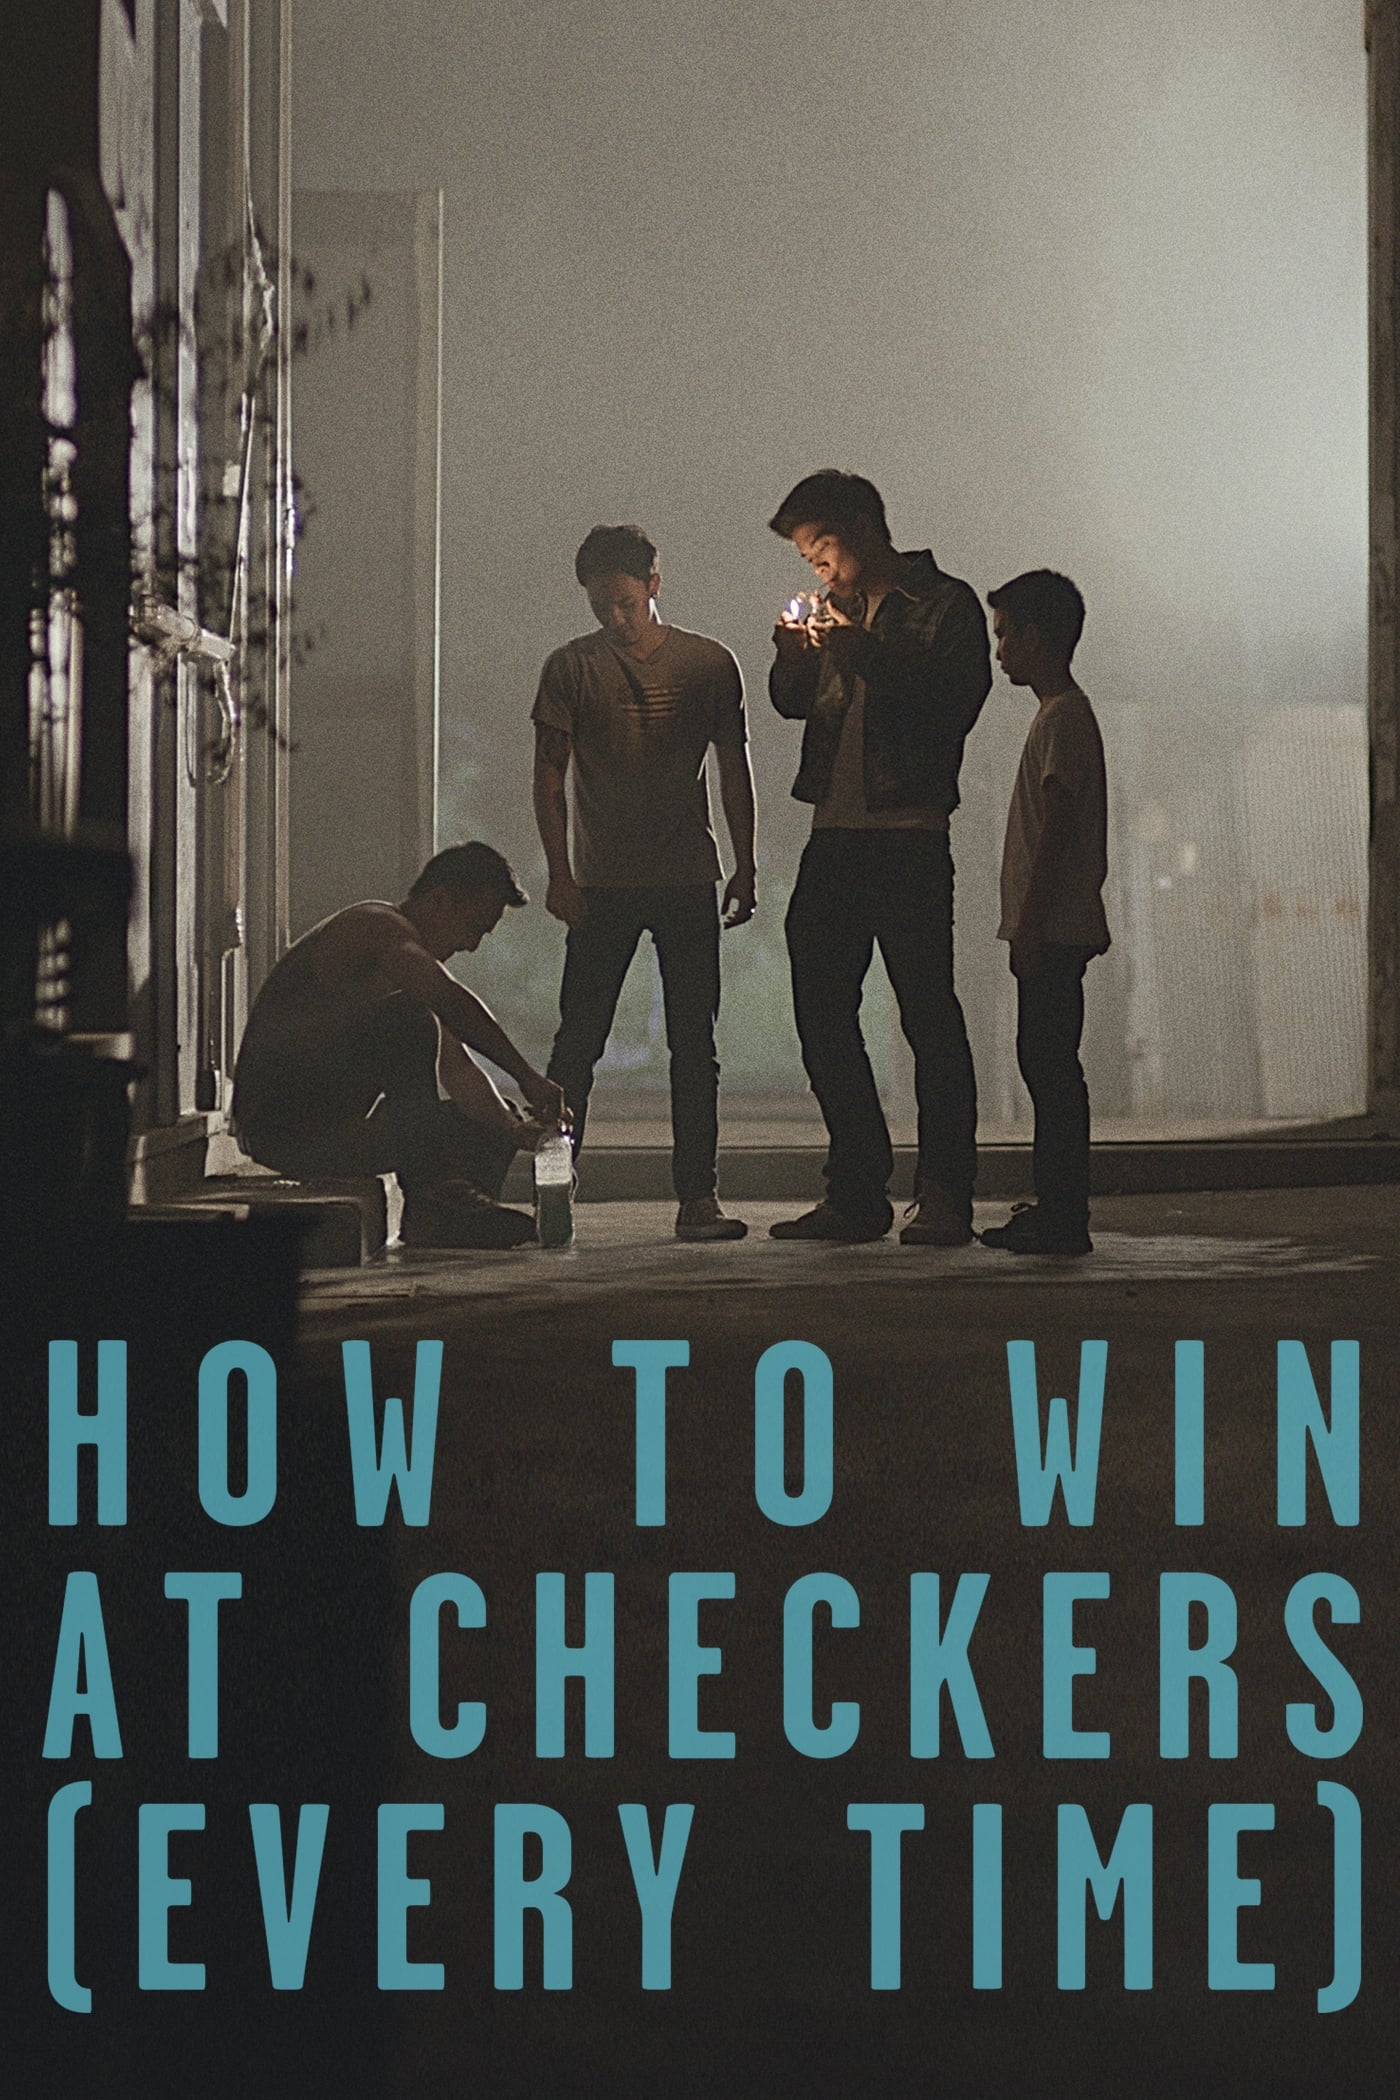 How to Win at Checkers (Every Time) (2015)